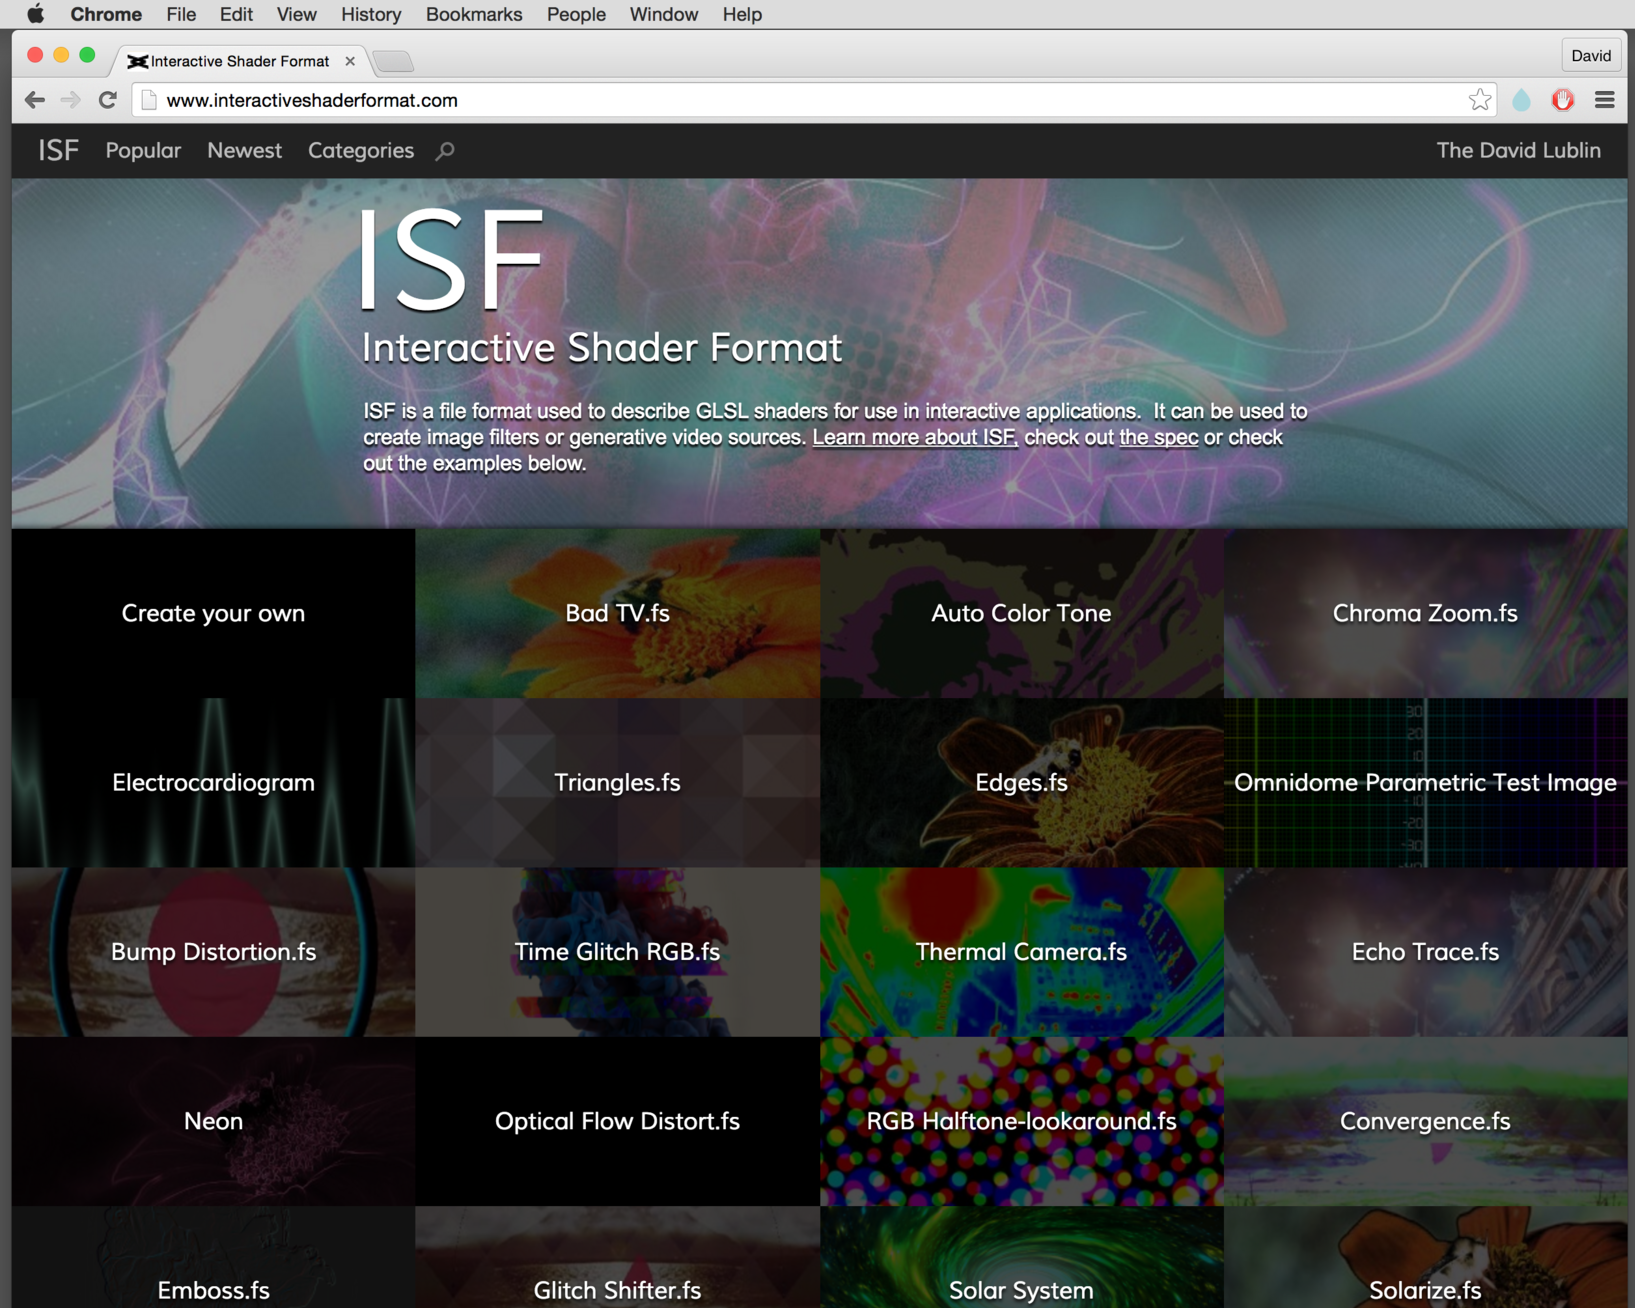 http://www.interactiveshaderformat.com/ has more example ISF files to get started.